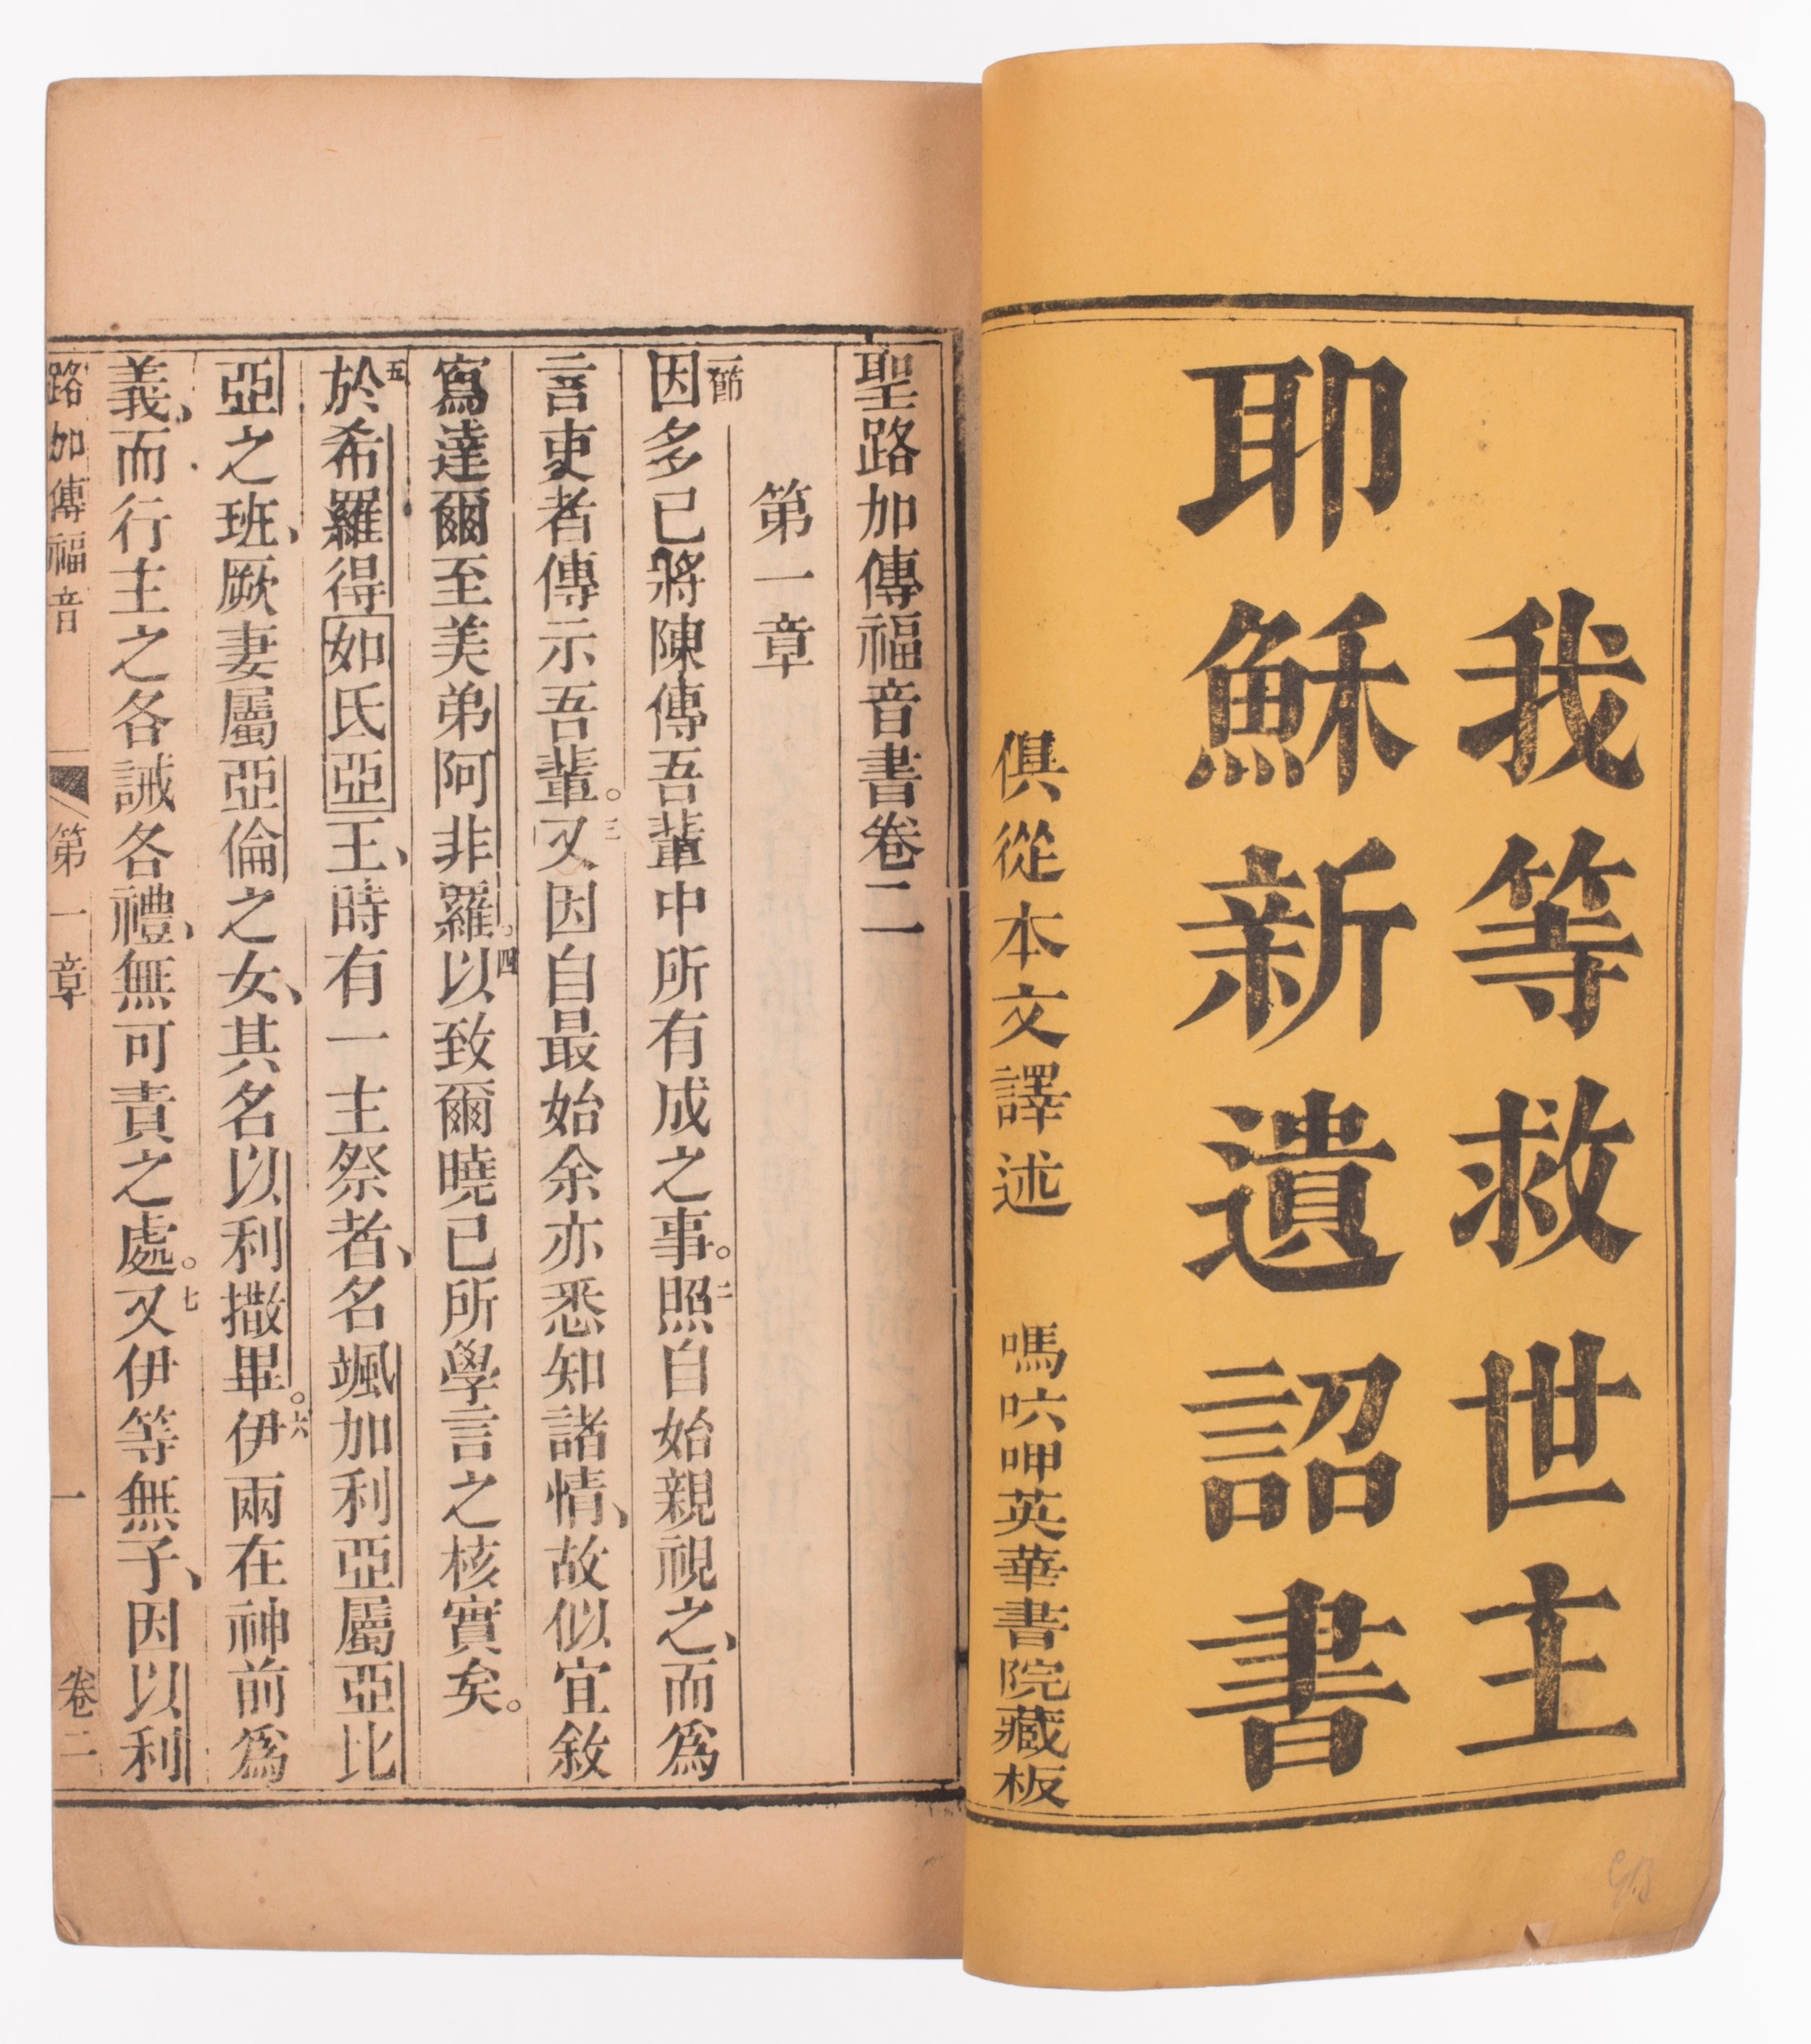 Gospel of St Luke in Wenli, Malacca, 1825